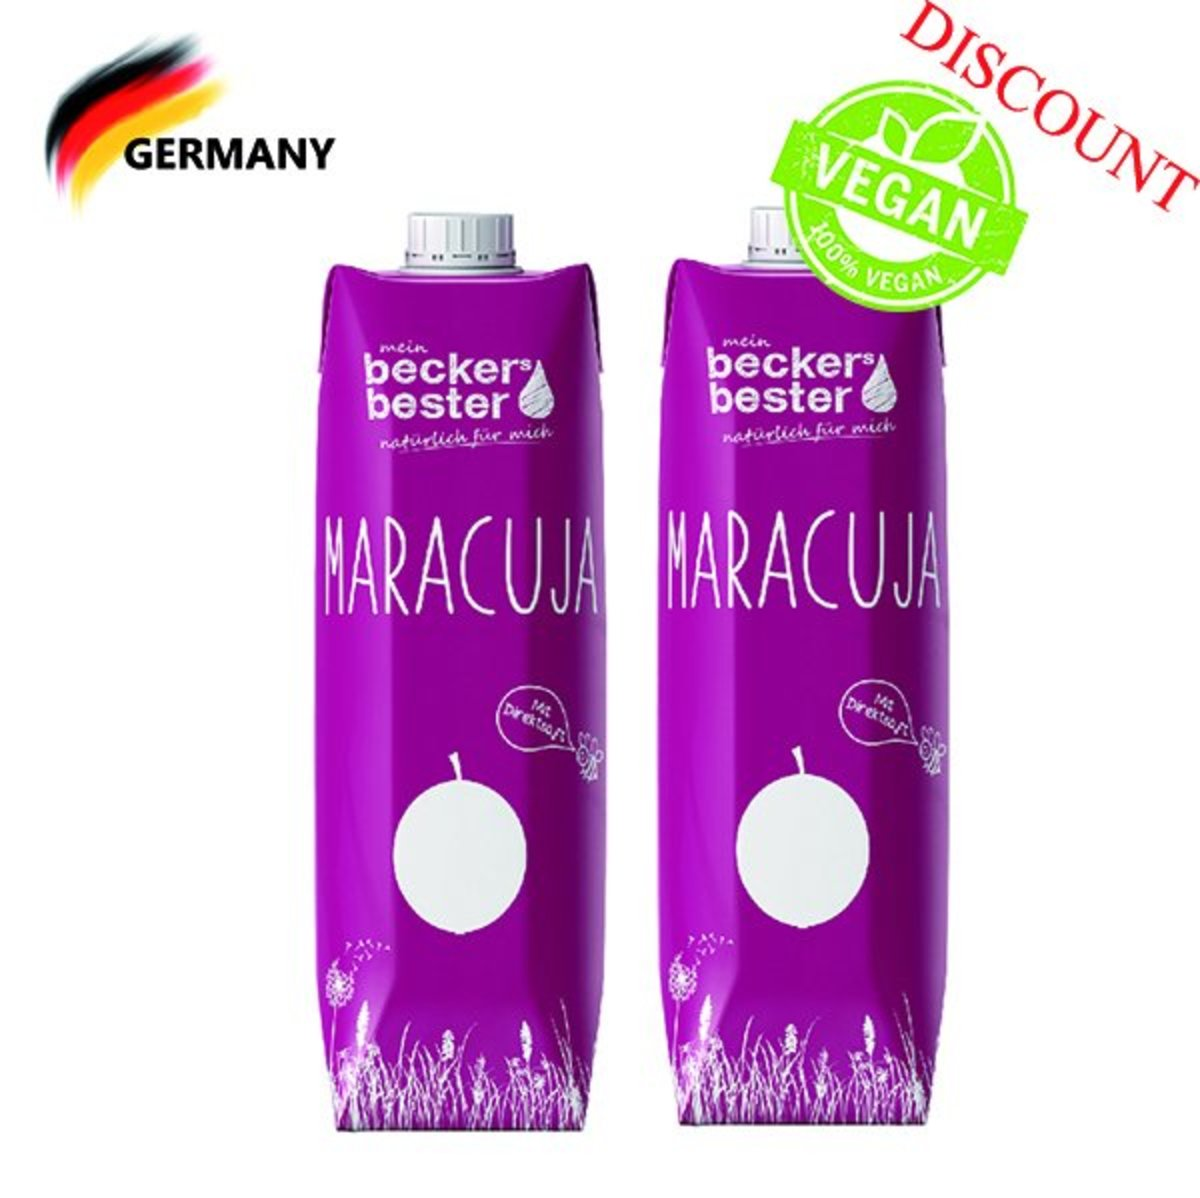 Direct Pressed Passion Fruit Nectar (Not-From-Concentrate) 1L x2 (best before date: 30/01/2020)